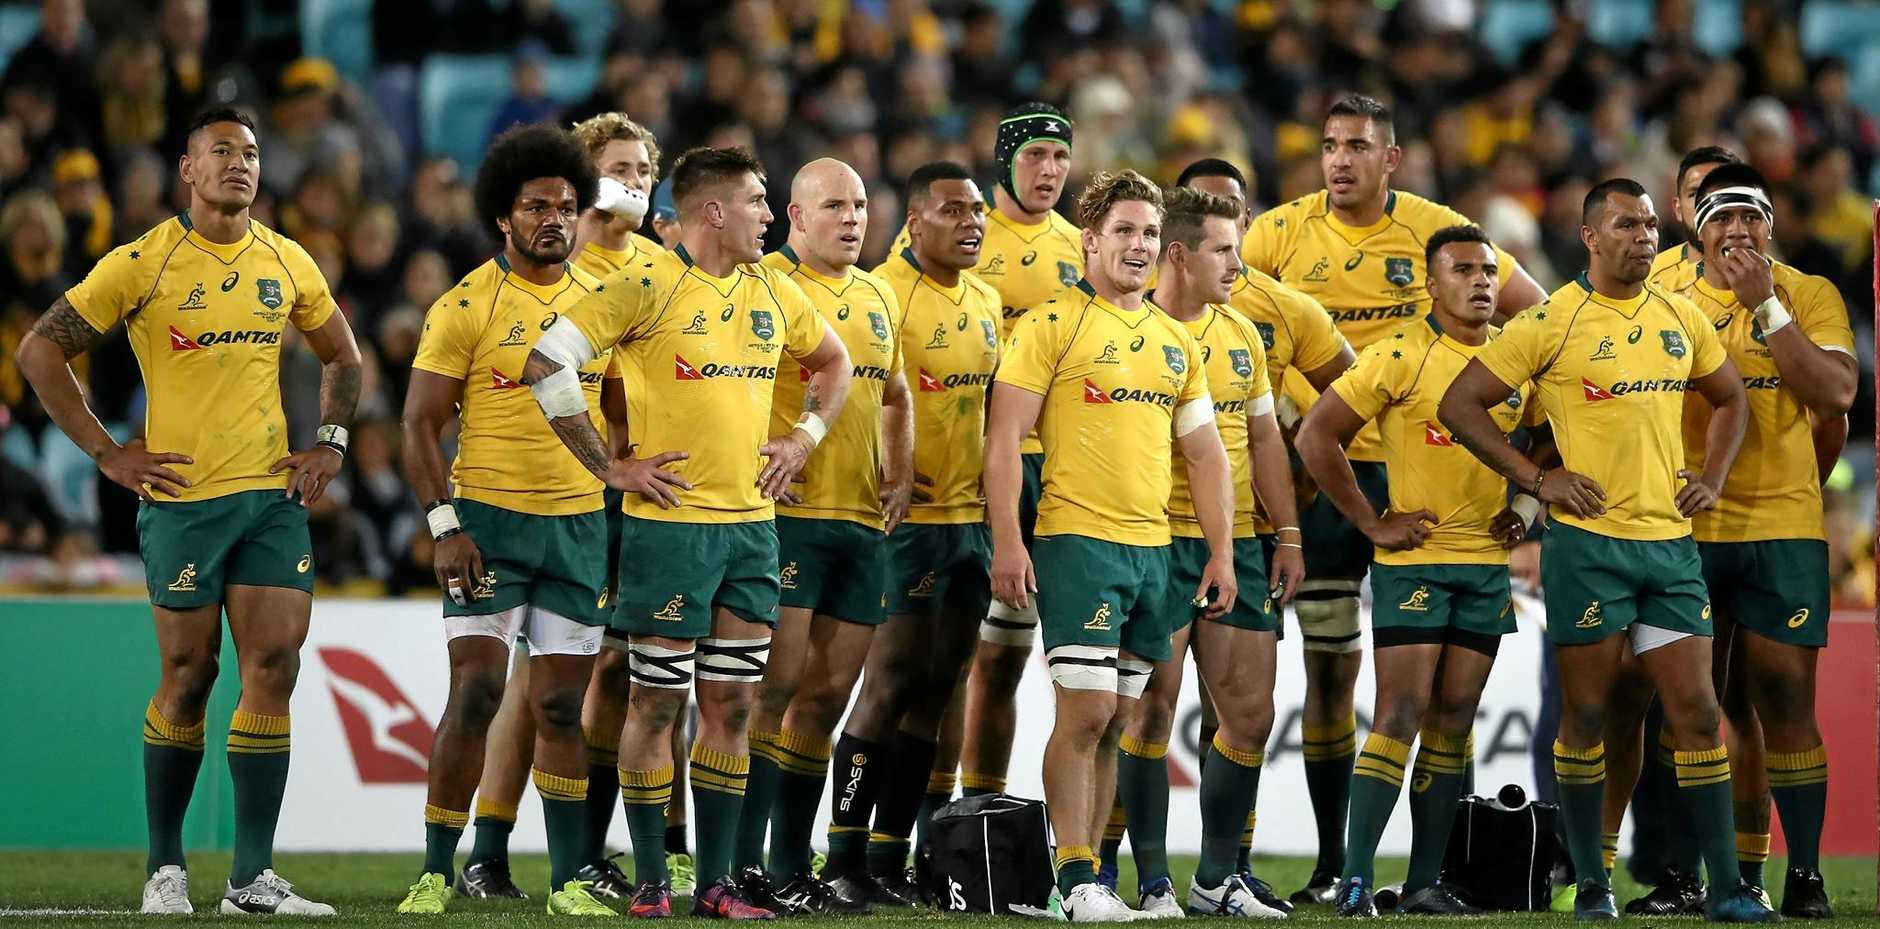 The Wallabies gather after conceding a try to the All Blacks at ANZ Stadium.